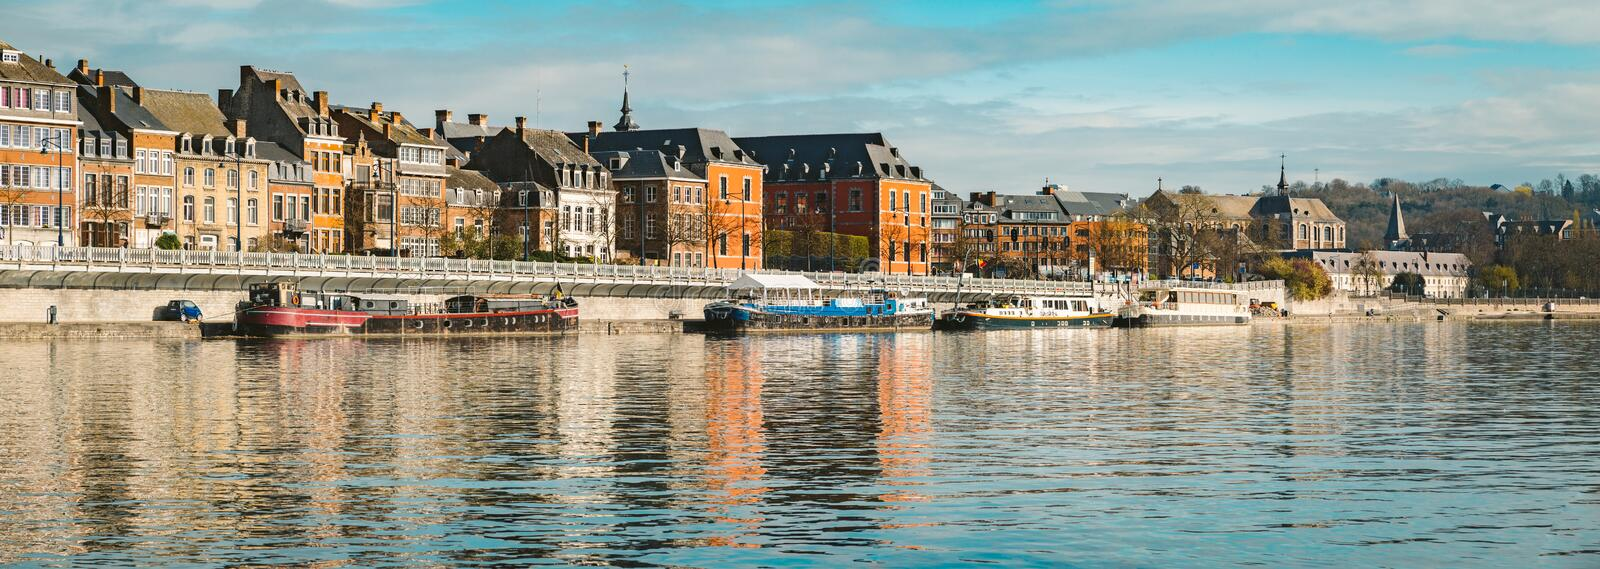 Historic town of Namur with ships along river Meuse, Wallonia, Belgium royalty free stock images